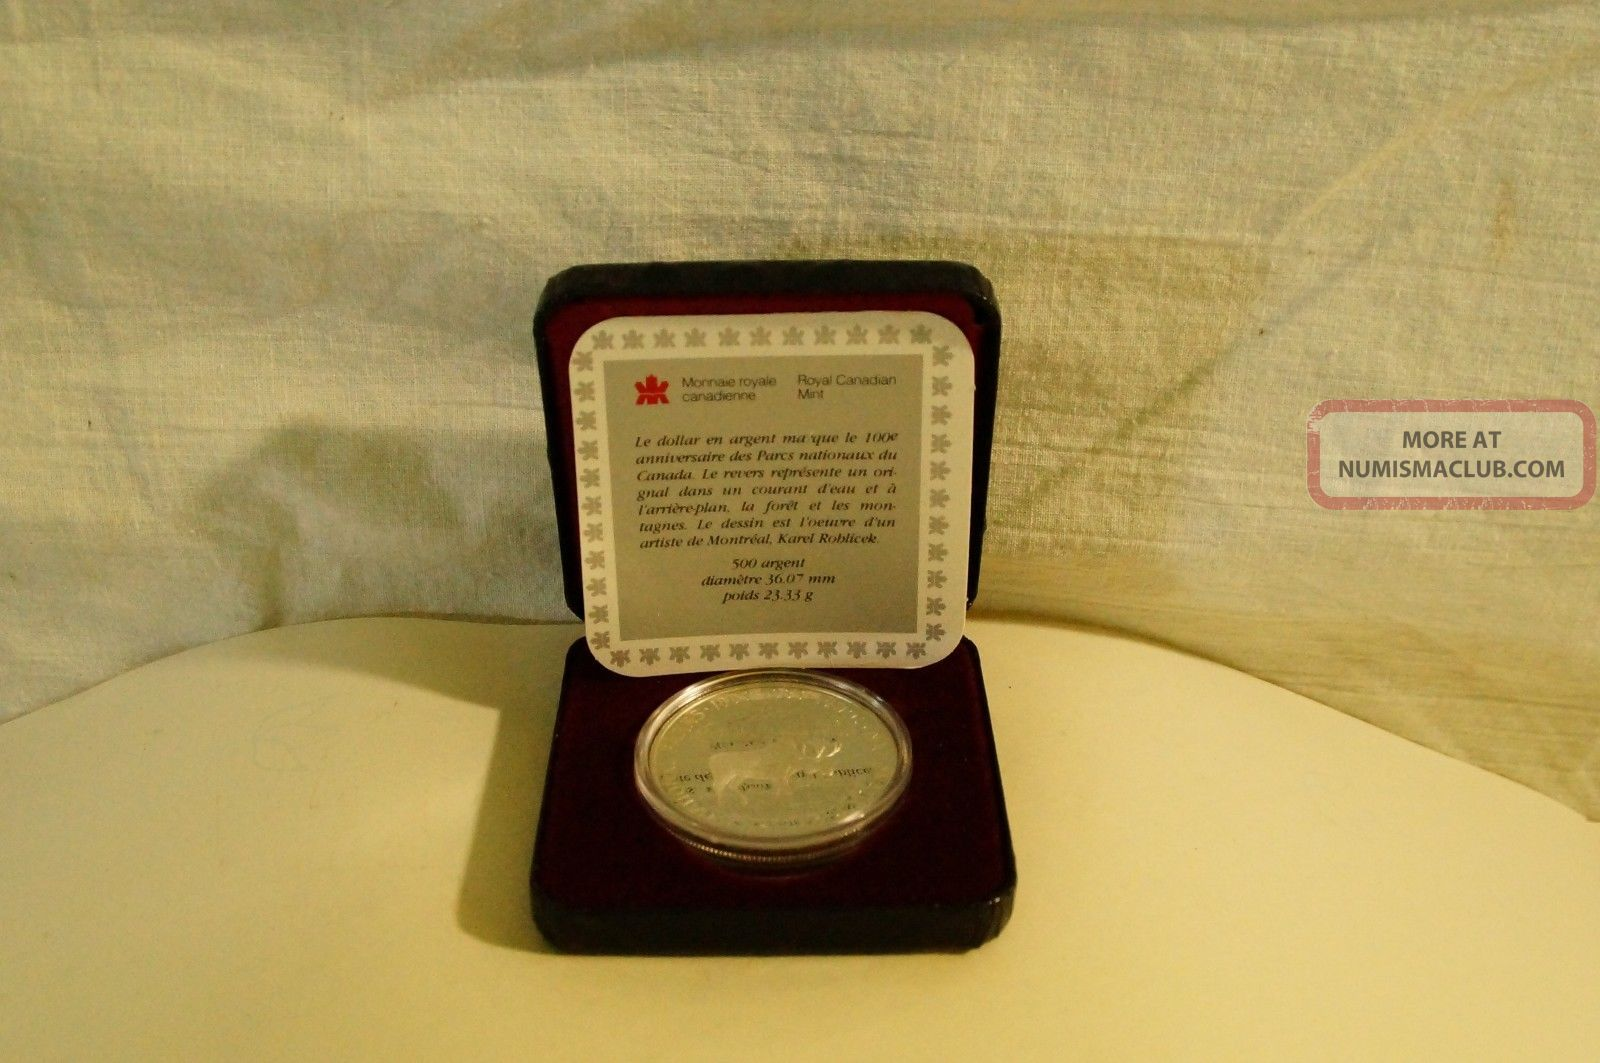 Canada 1985 National Parks Silver Dollar Proof in Case with COA